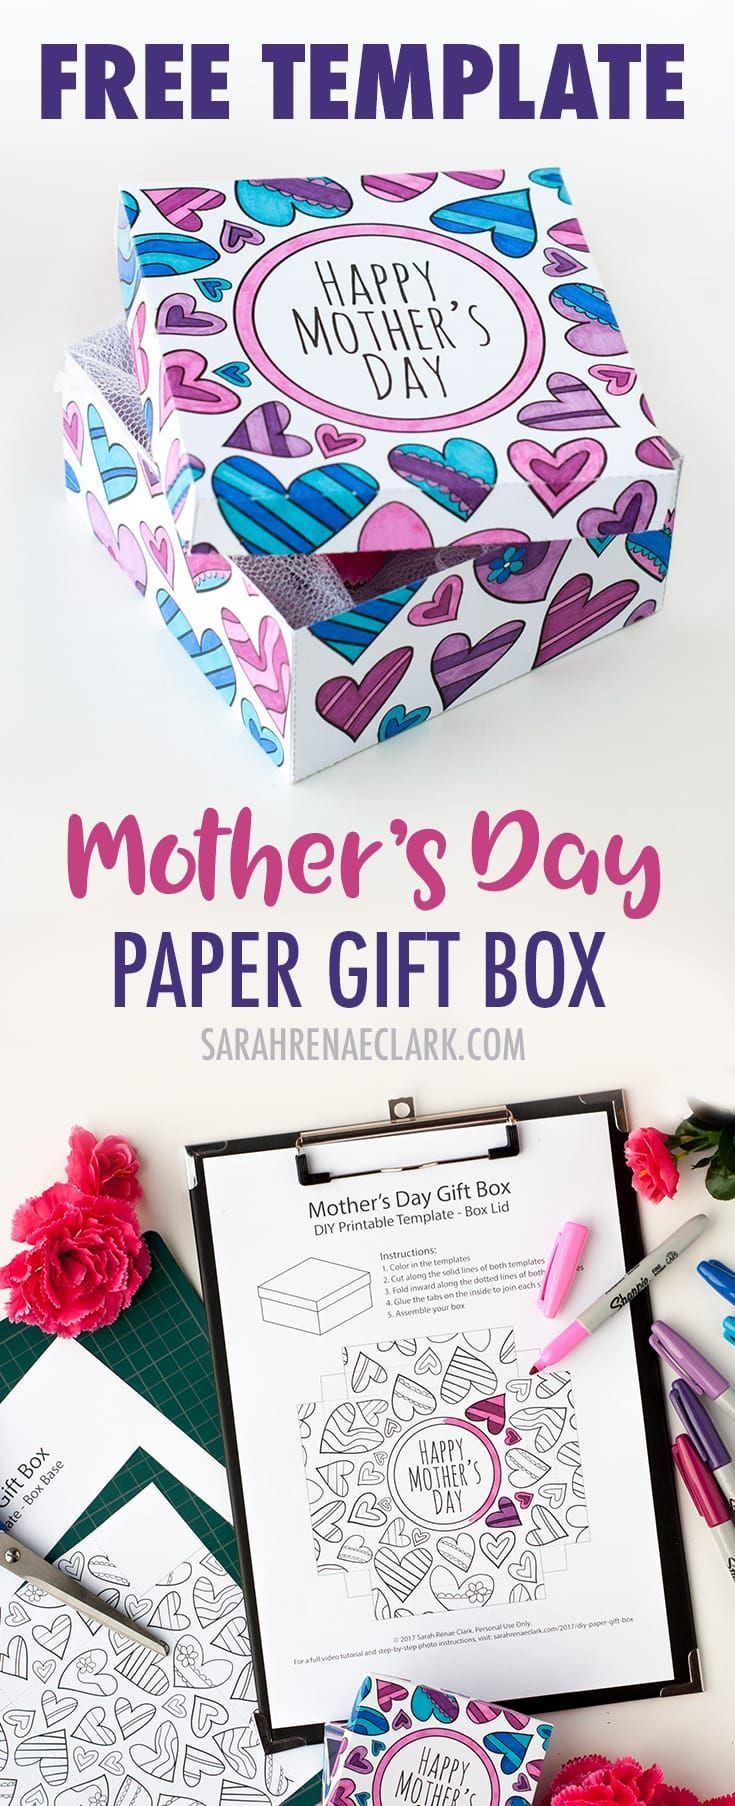 How To Make A Paper Gift Box Pinterest Paper Gift Box Paper